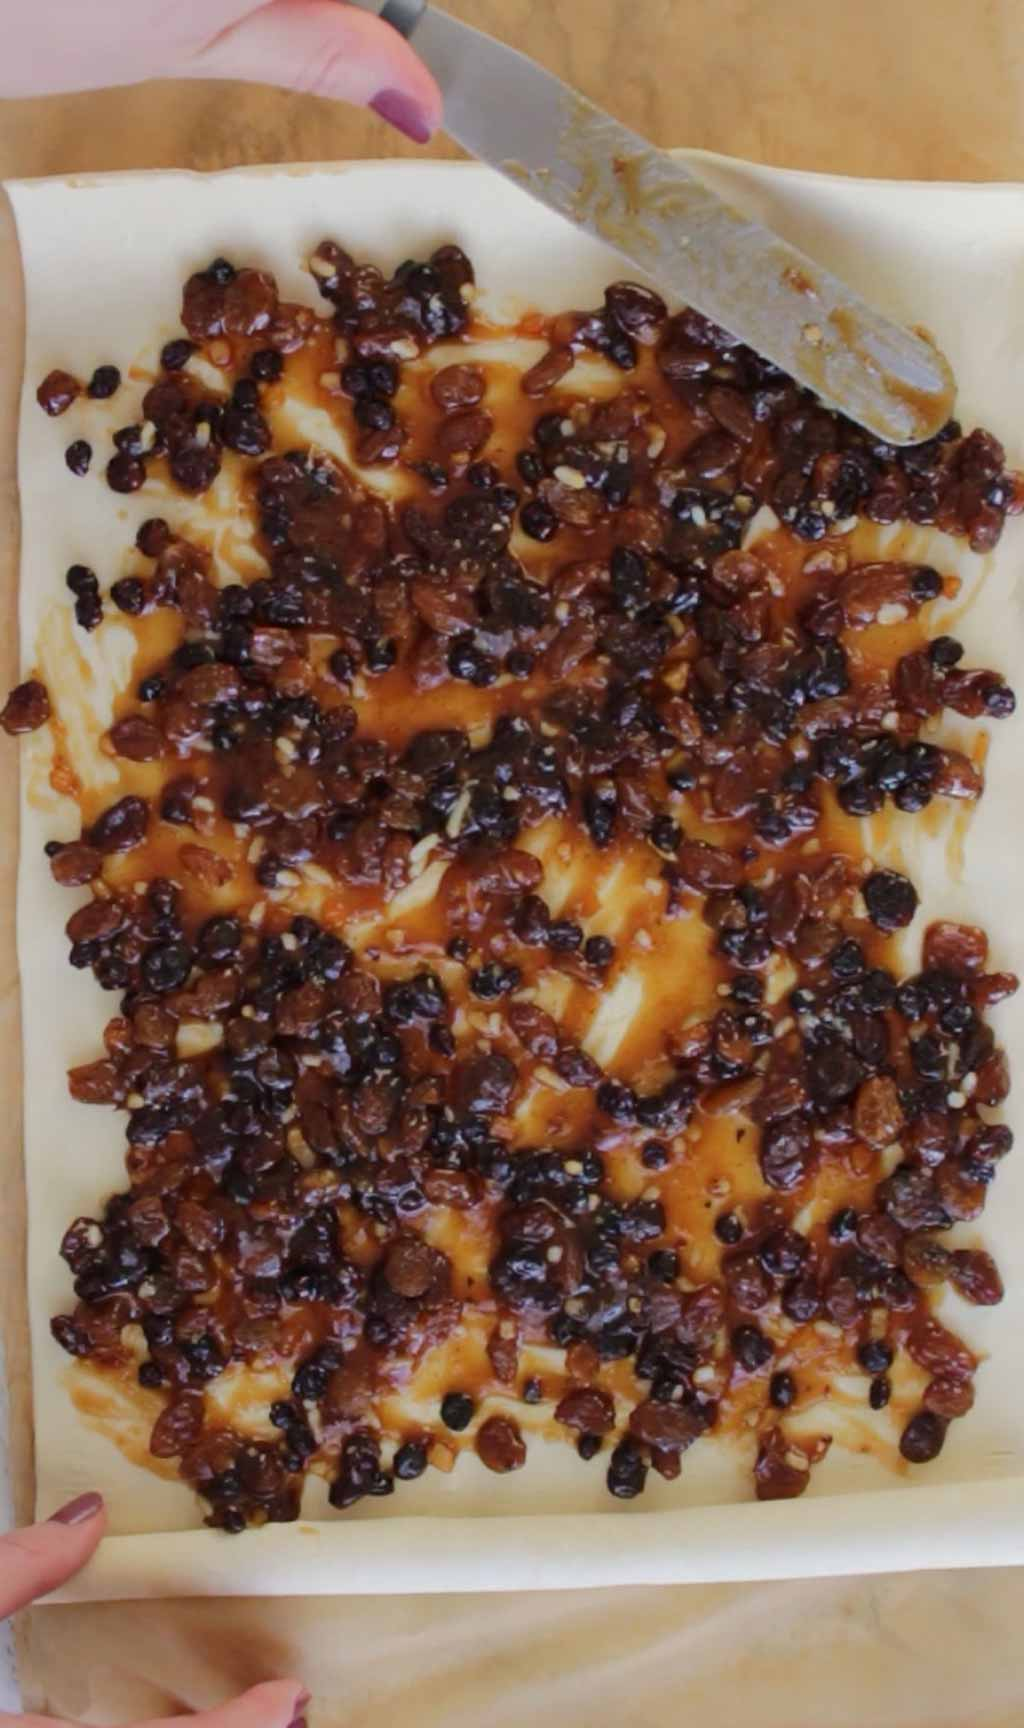 Spreading Mincemeat Over The Puff Pastry Sheet